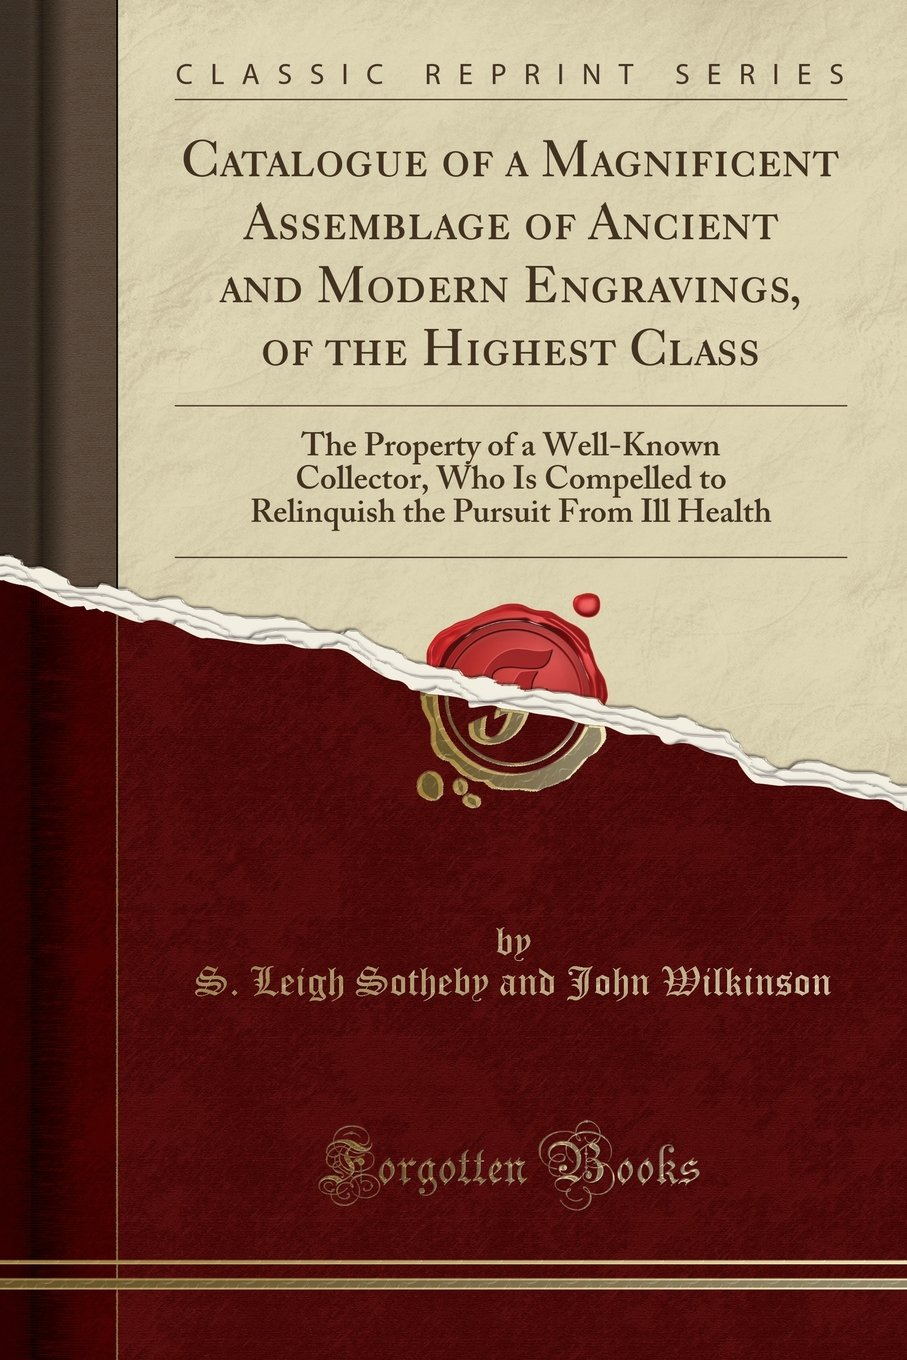 Download Catalogue of a Magnificent Assemblage of Ancient and Modern Engravings, of the Highest Class: The Property of a Well-Known Collector, Who Is Compelled ... the Pursuit From Ill Health (Classic Reprint) PDF